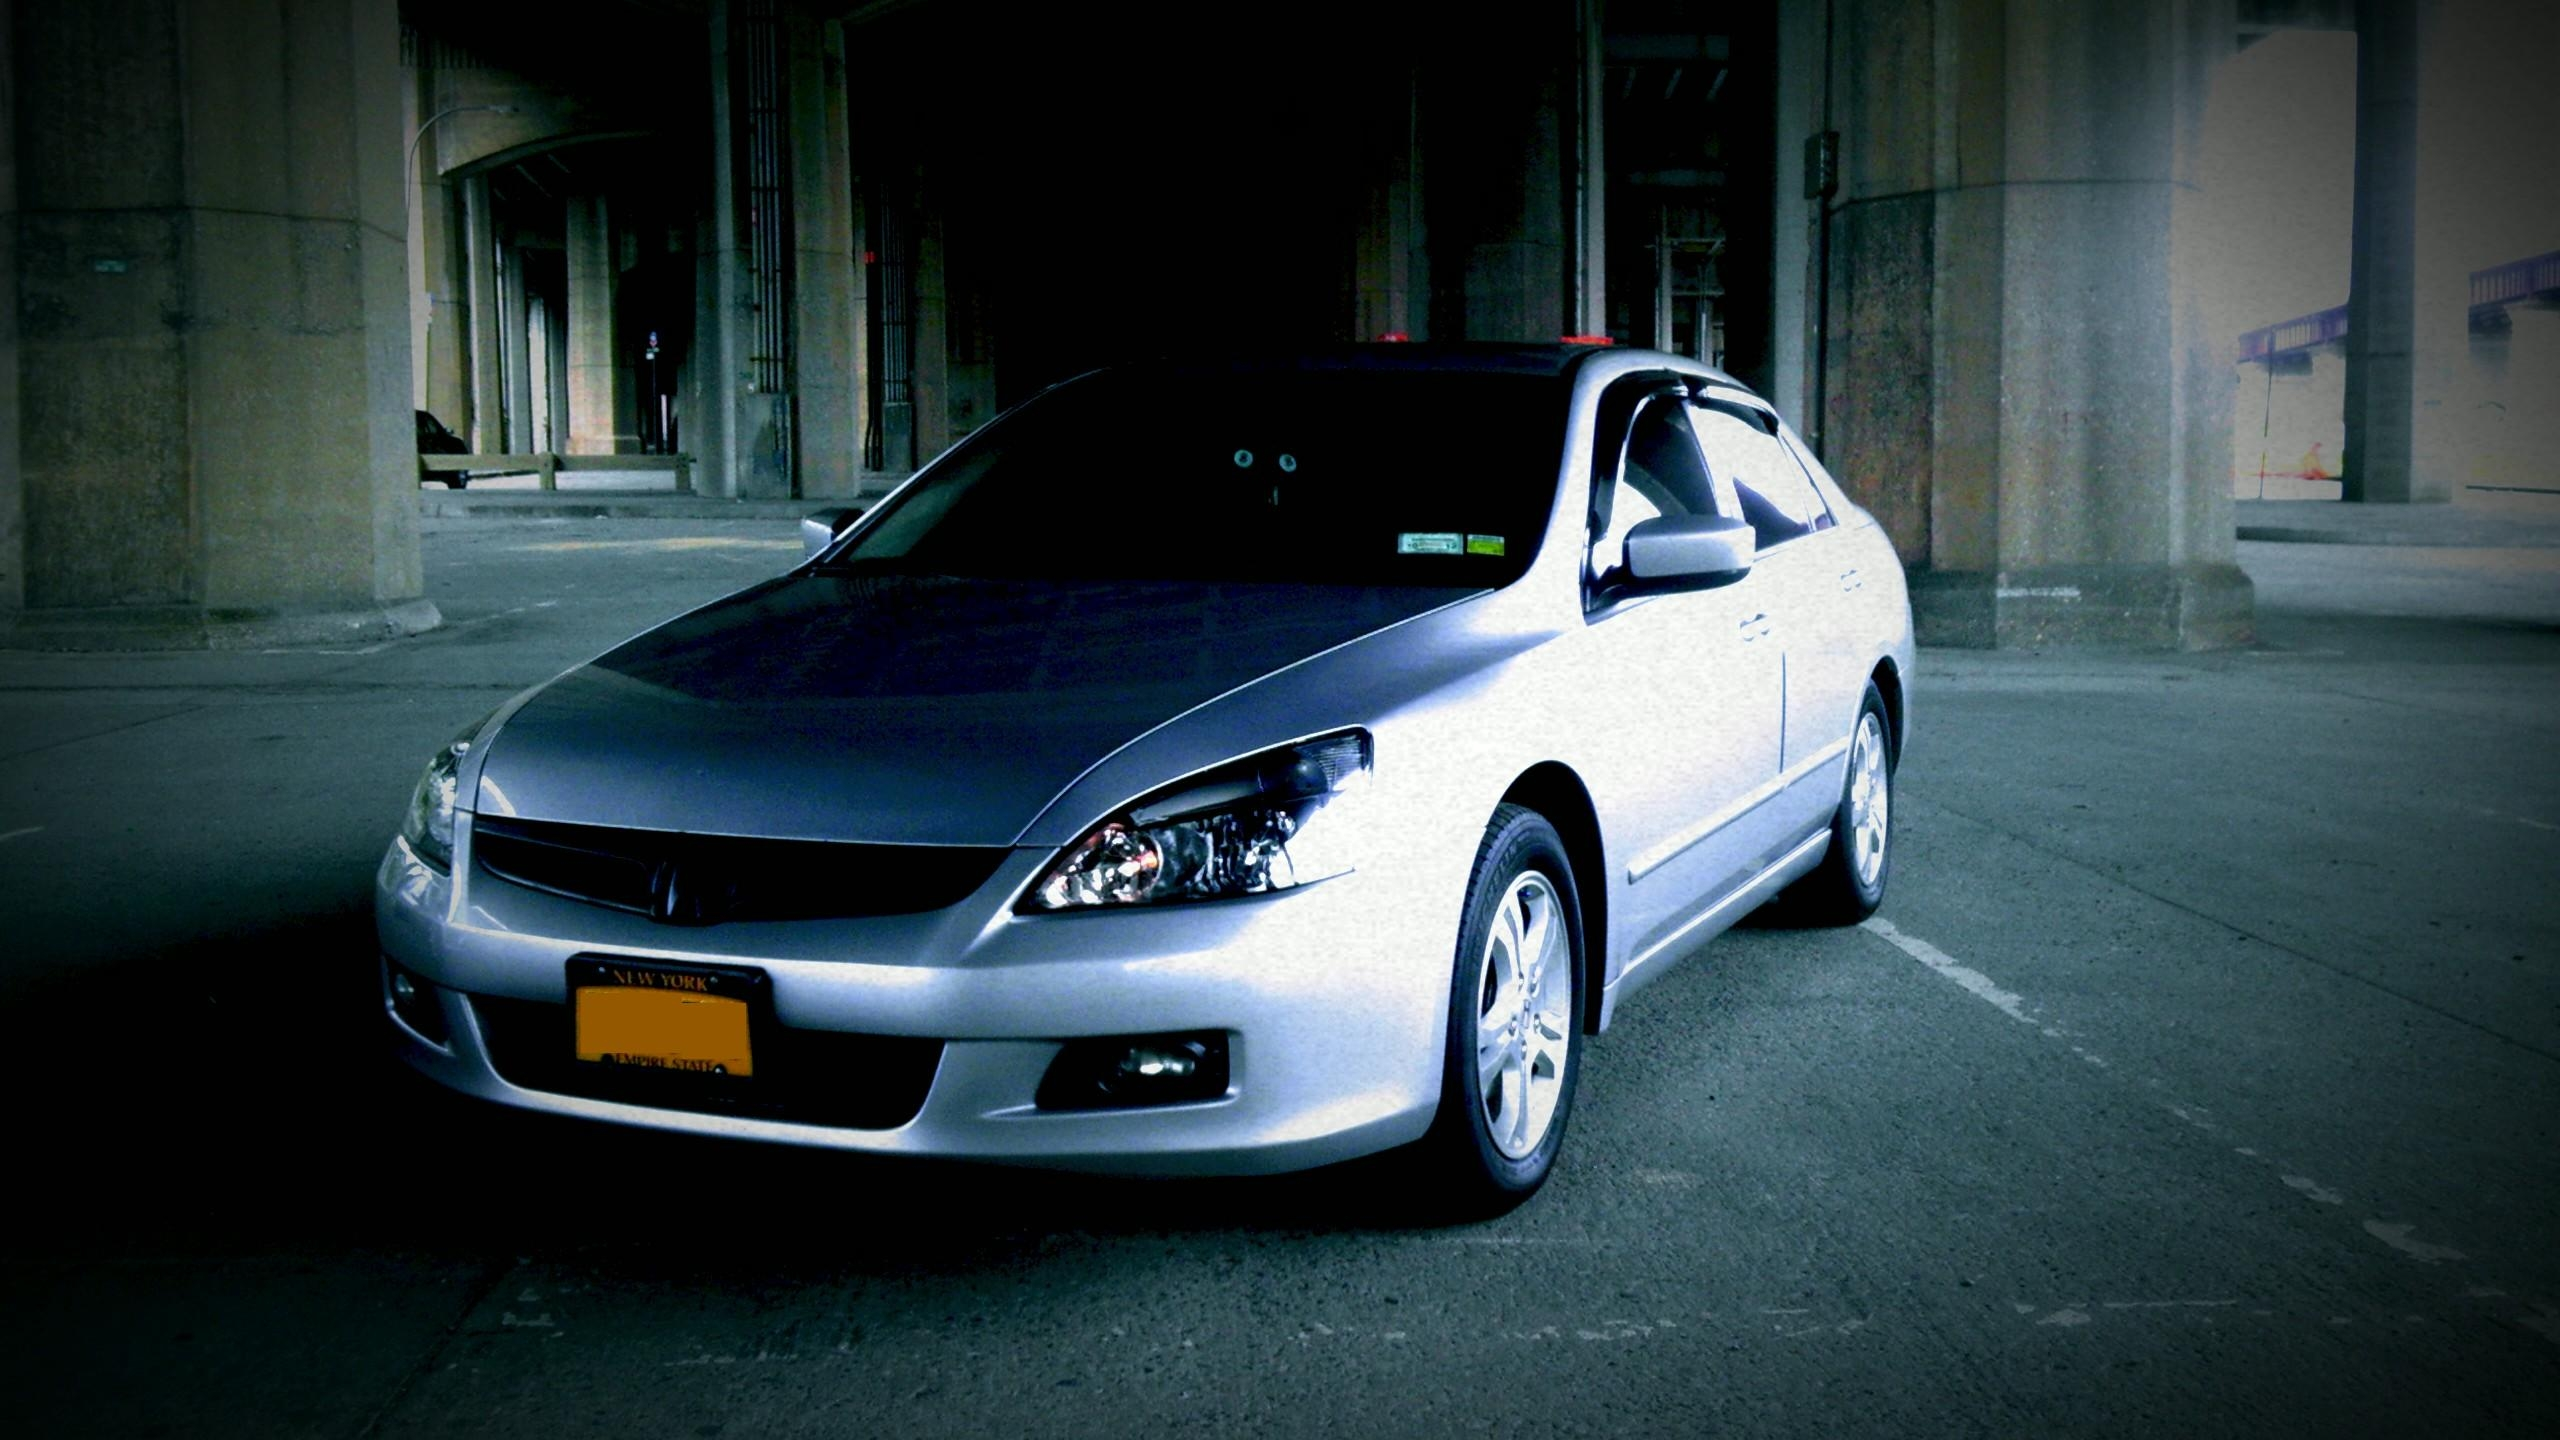 MrSmiff's 2007 Honda Accord